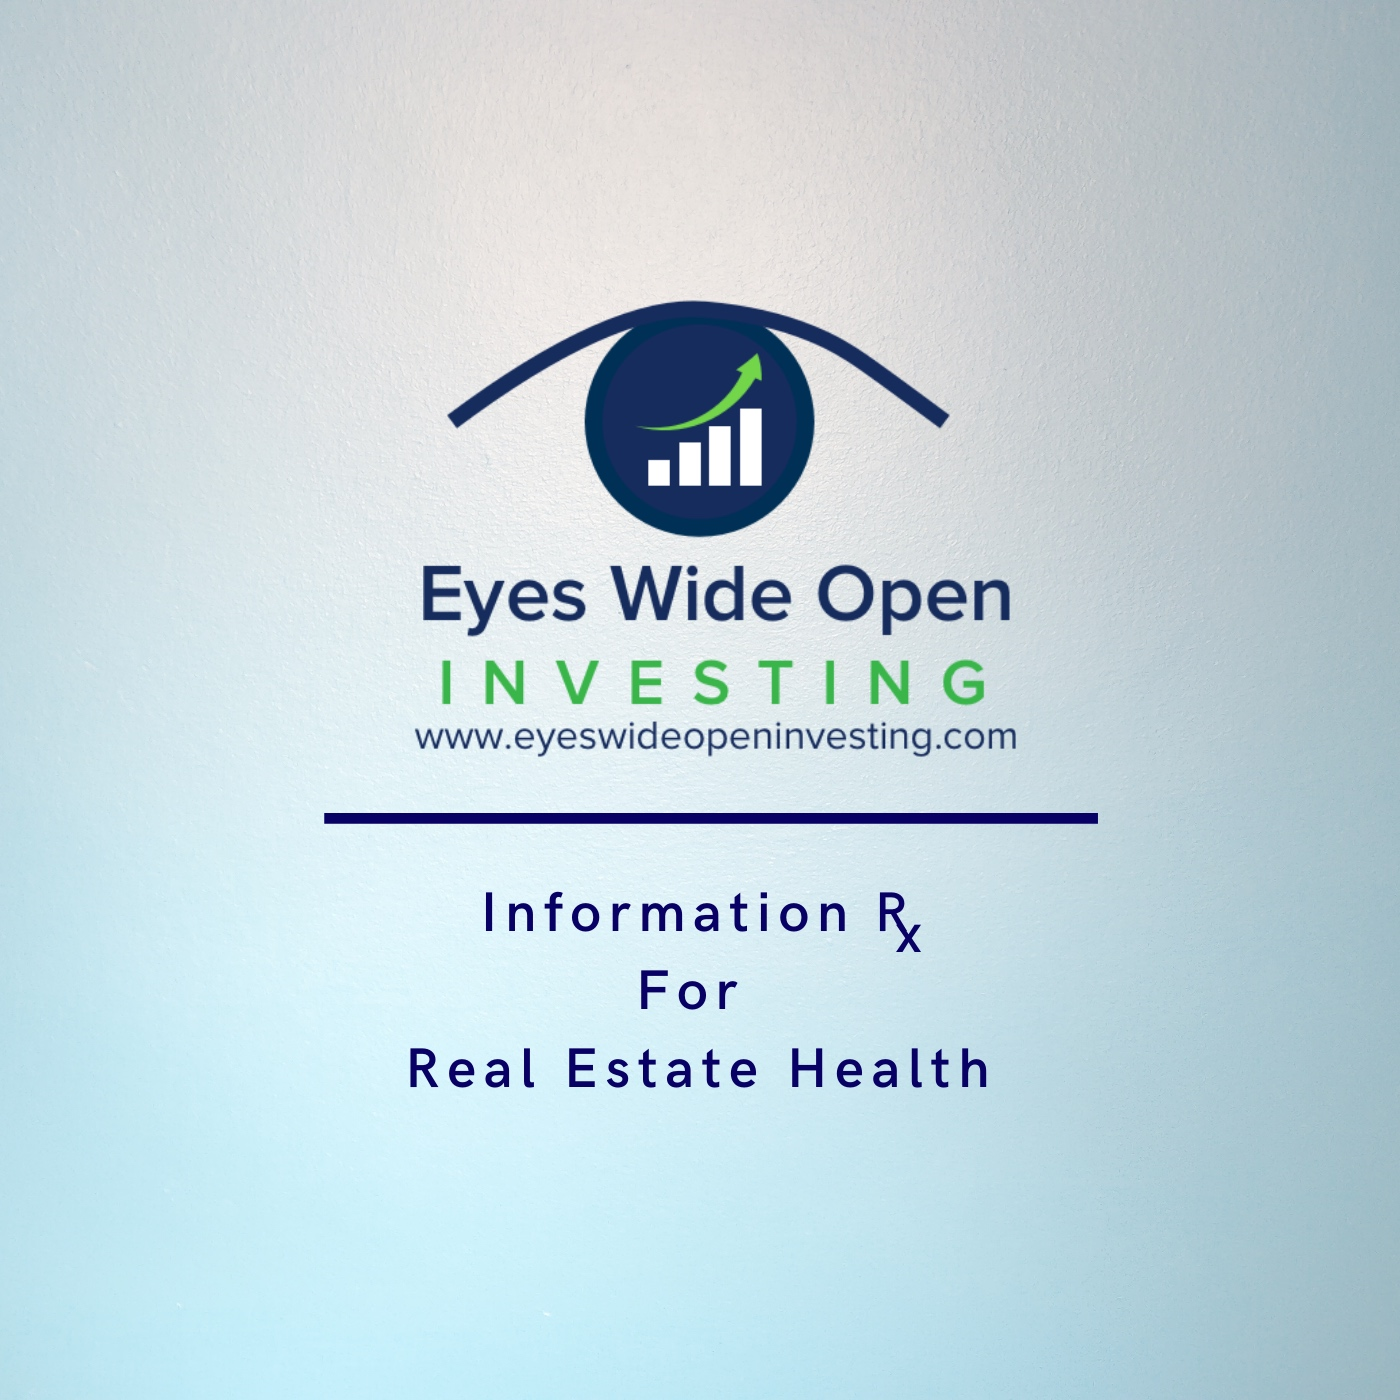 Eyes Wide Open Investing